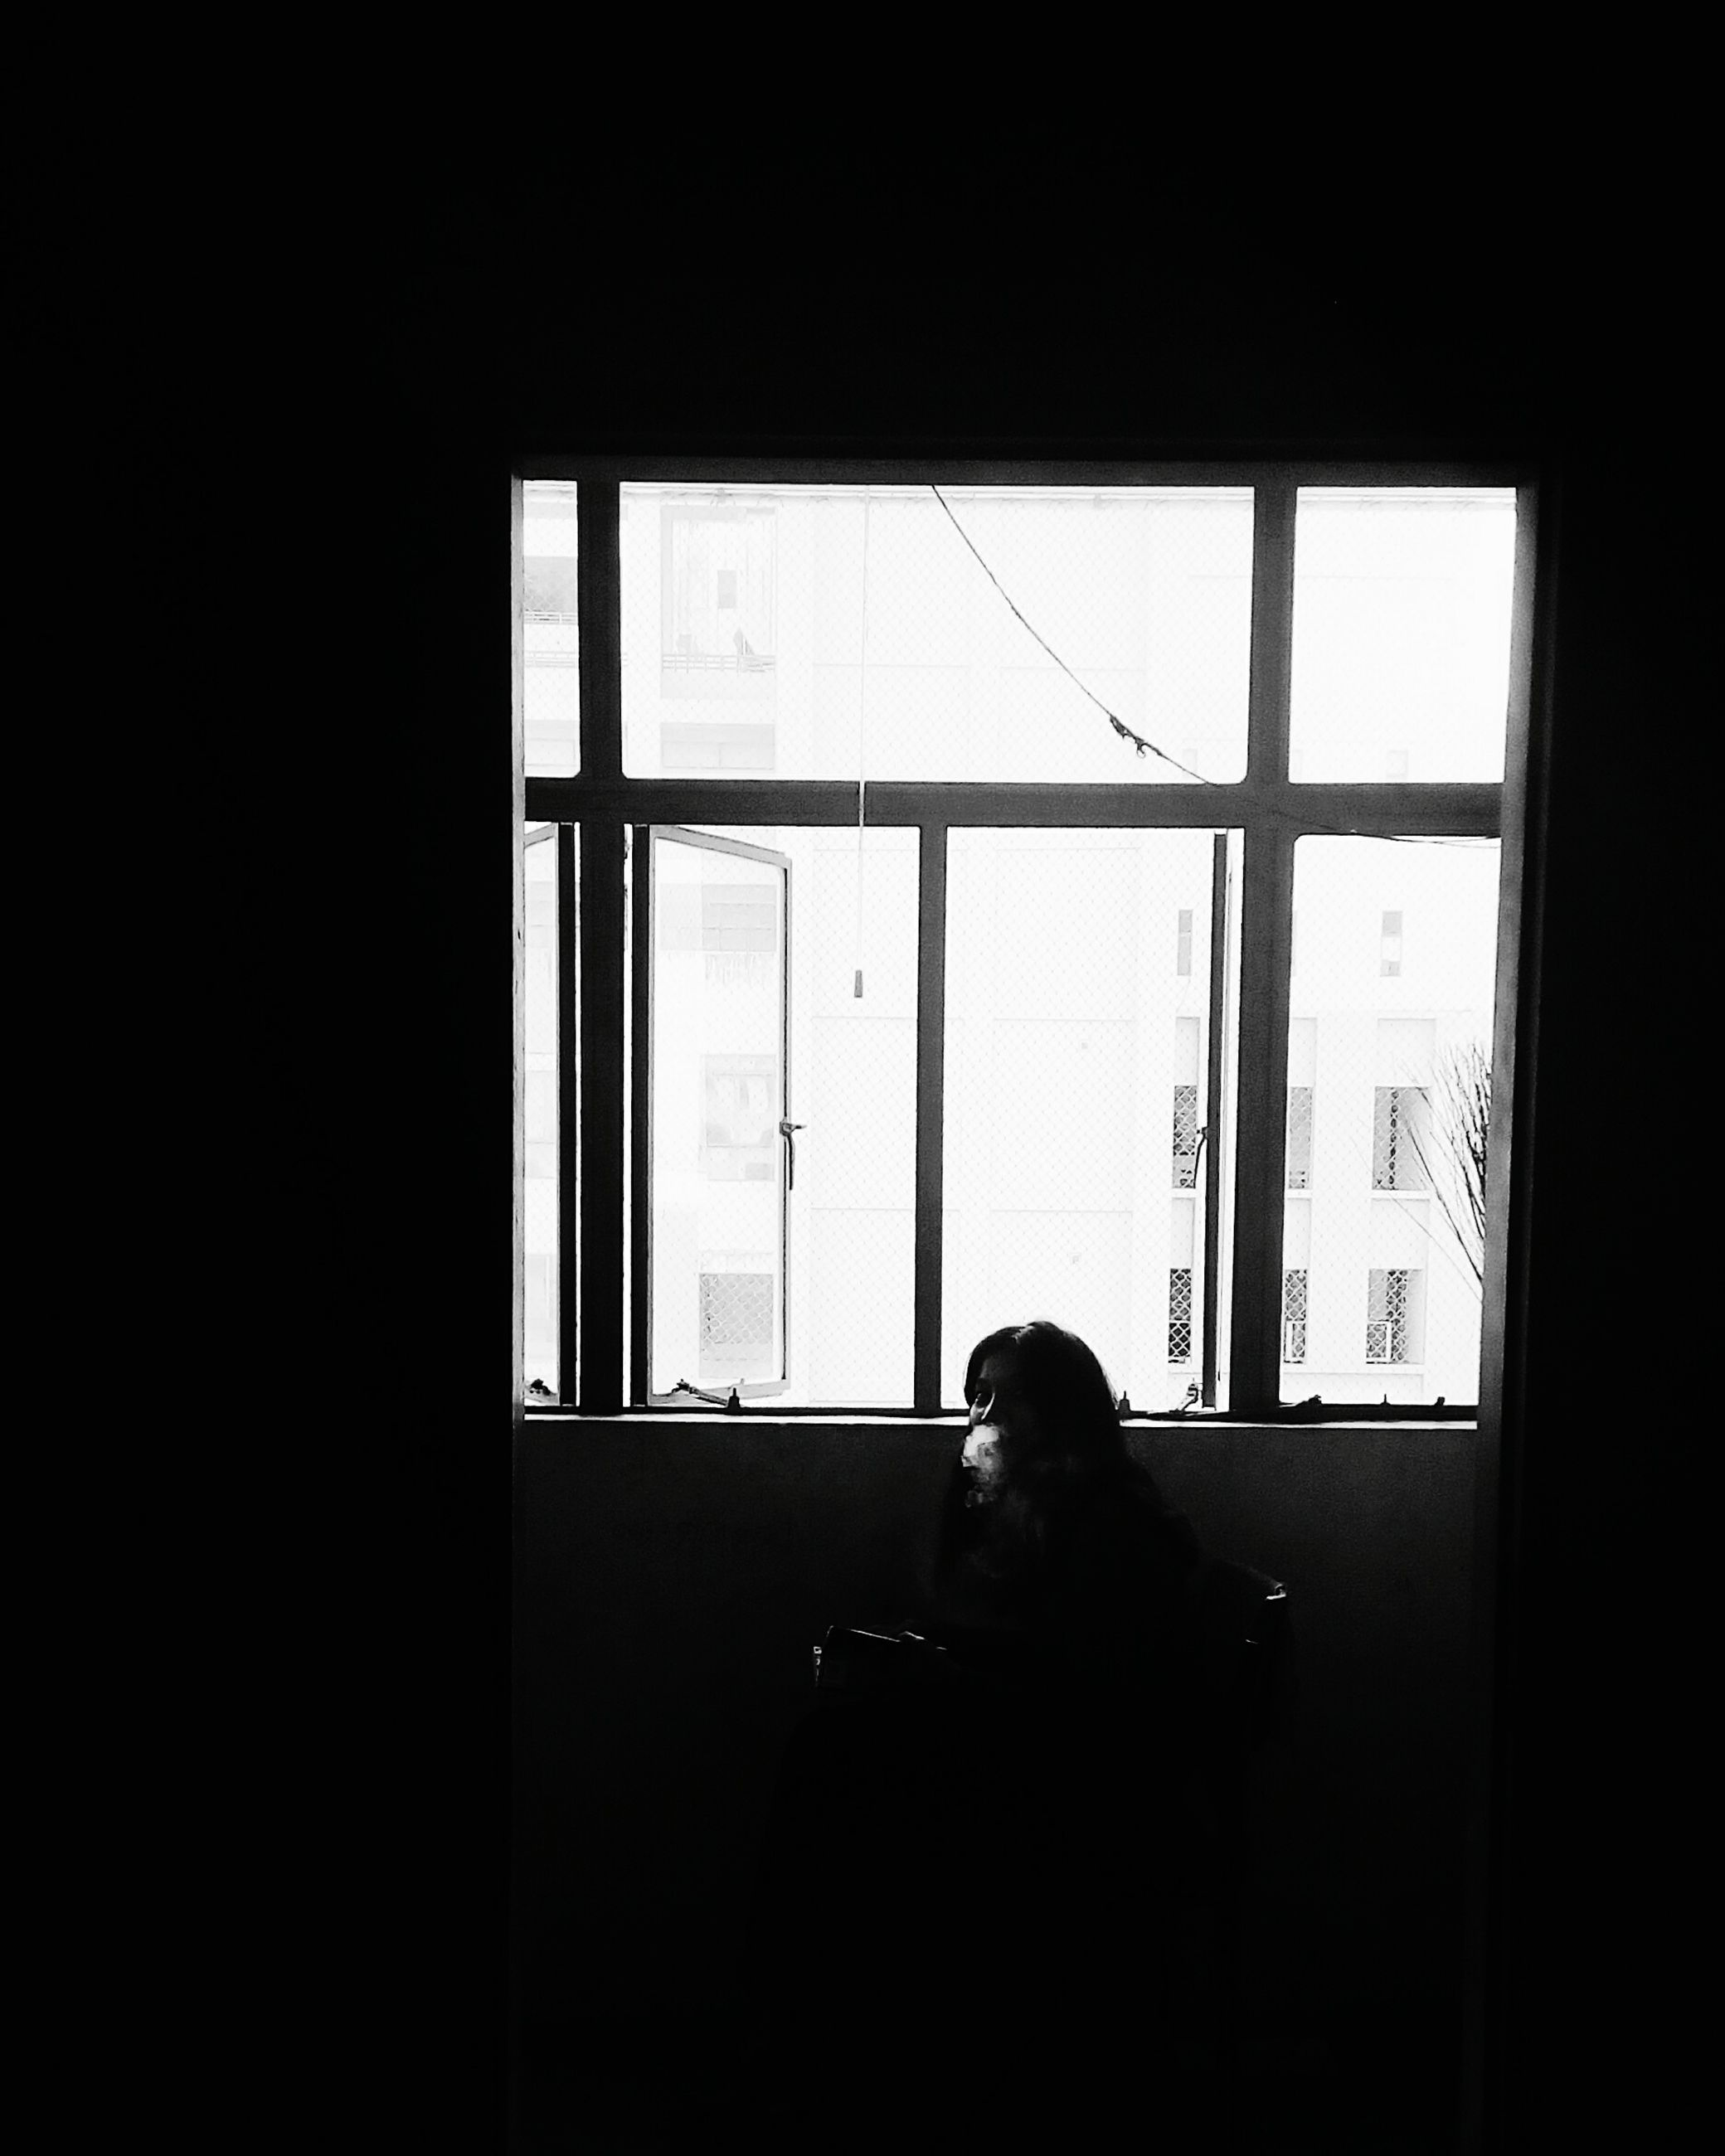 indoors, window, men, glass - material, rear view, transparent, waist up, sitting, silhouette, looking through window, dark, domestic life, day, casual clothing, darkroom, young adult, one mid adult man only